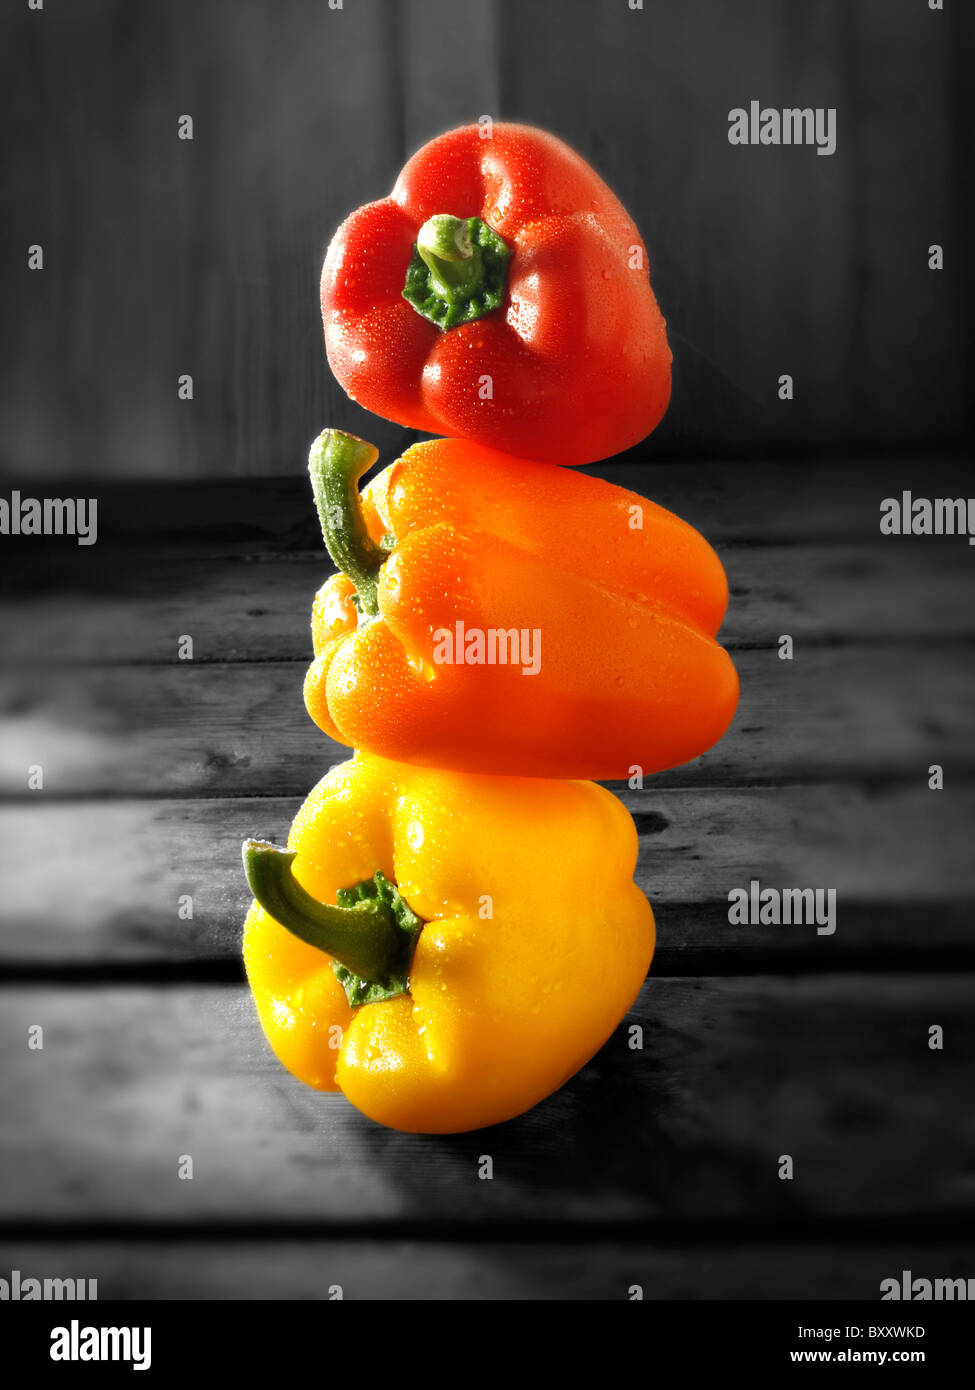 Mixed red, yellow & orange fresh bell peppers photos, pictures & images - Stock Image